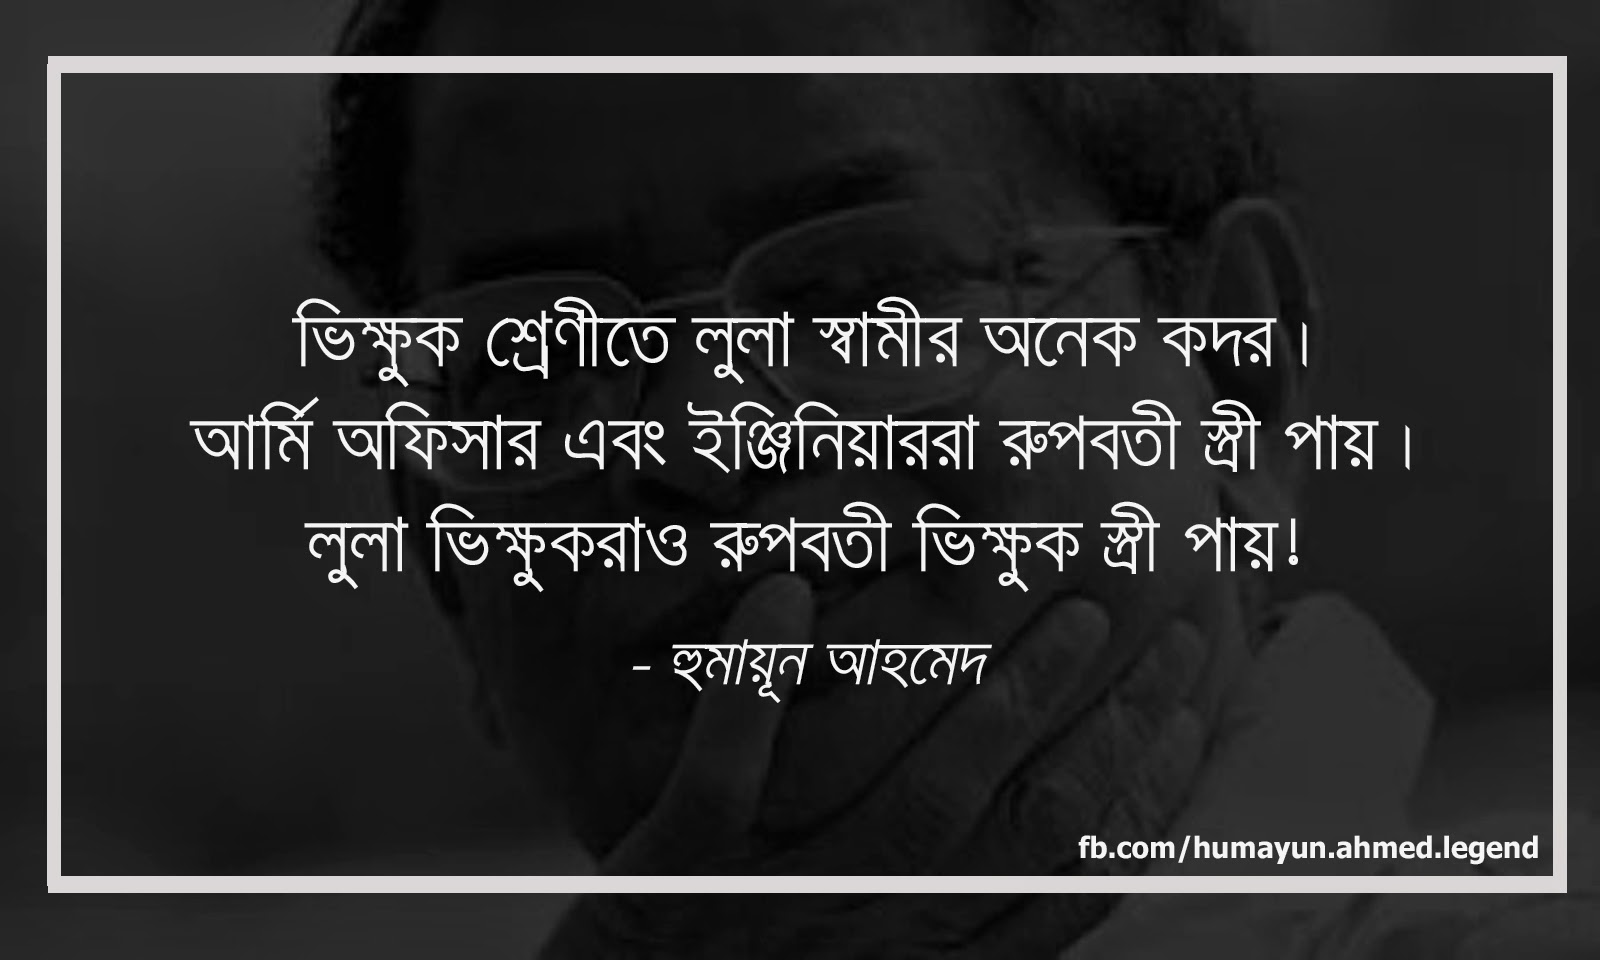 Alf Quotes Heroes Saying Humayun Ahmed's Bengali Quotes About Men